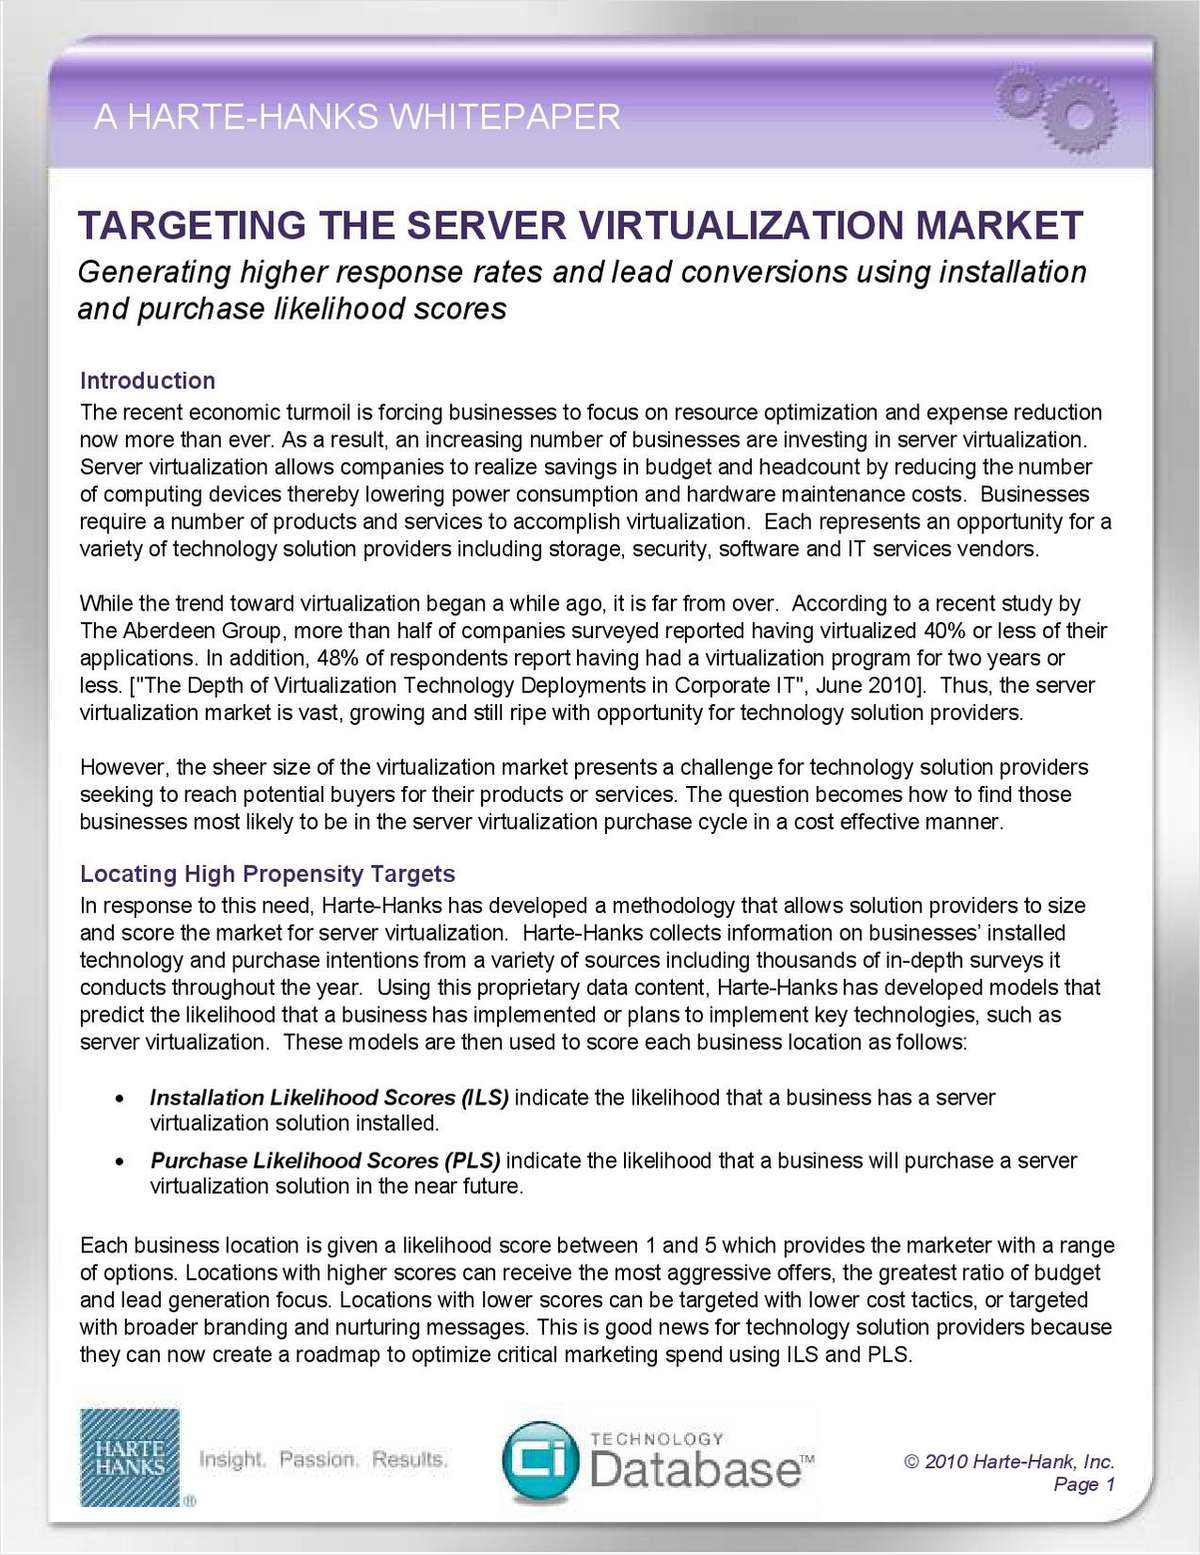 Locating Businesses Most Likely to Puchase Server Virtualization Solutions